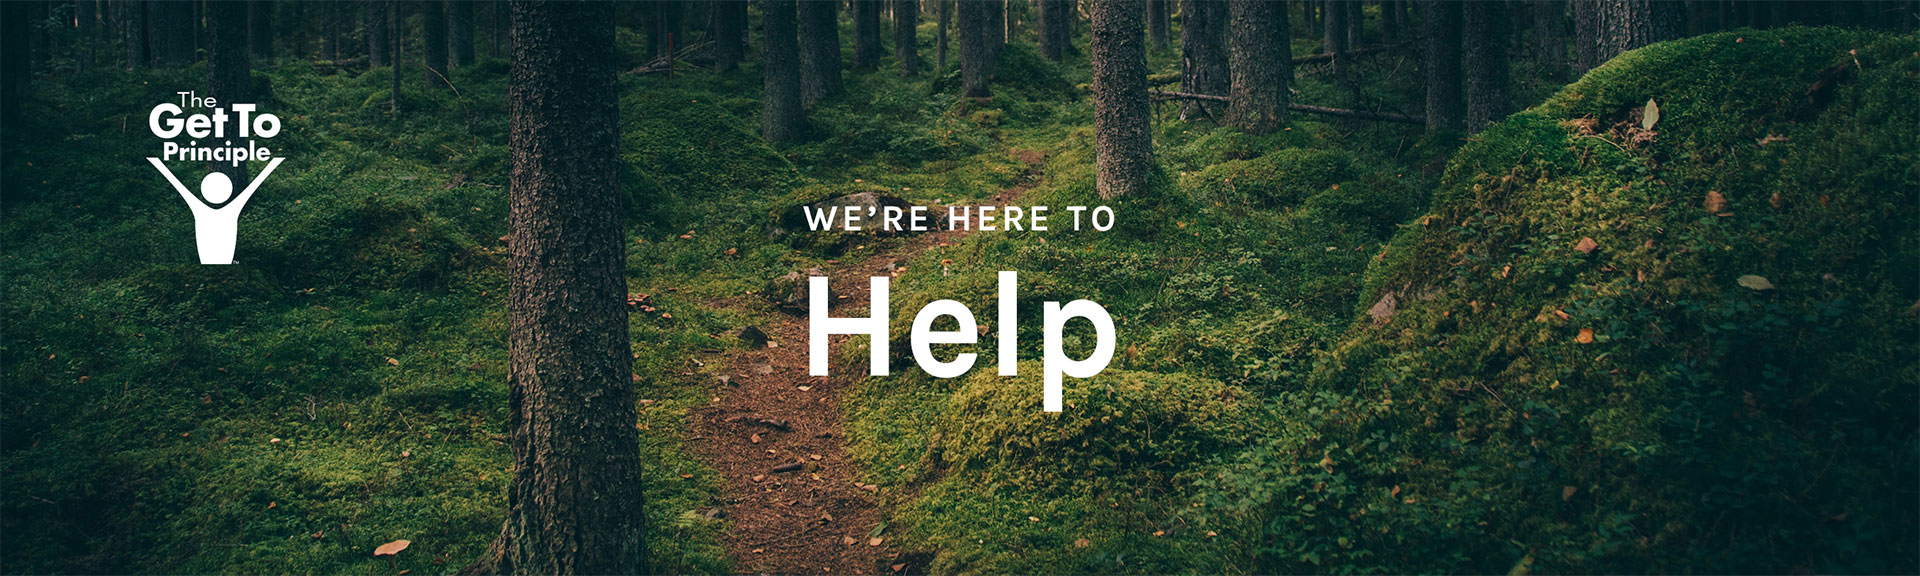 We're There To Help